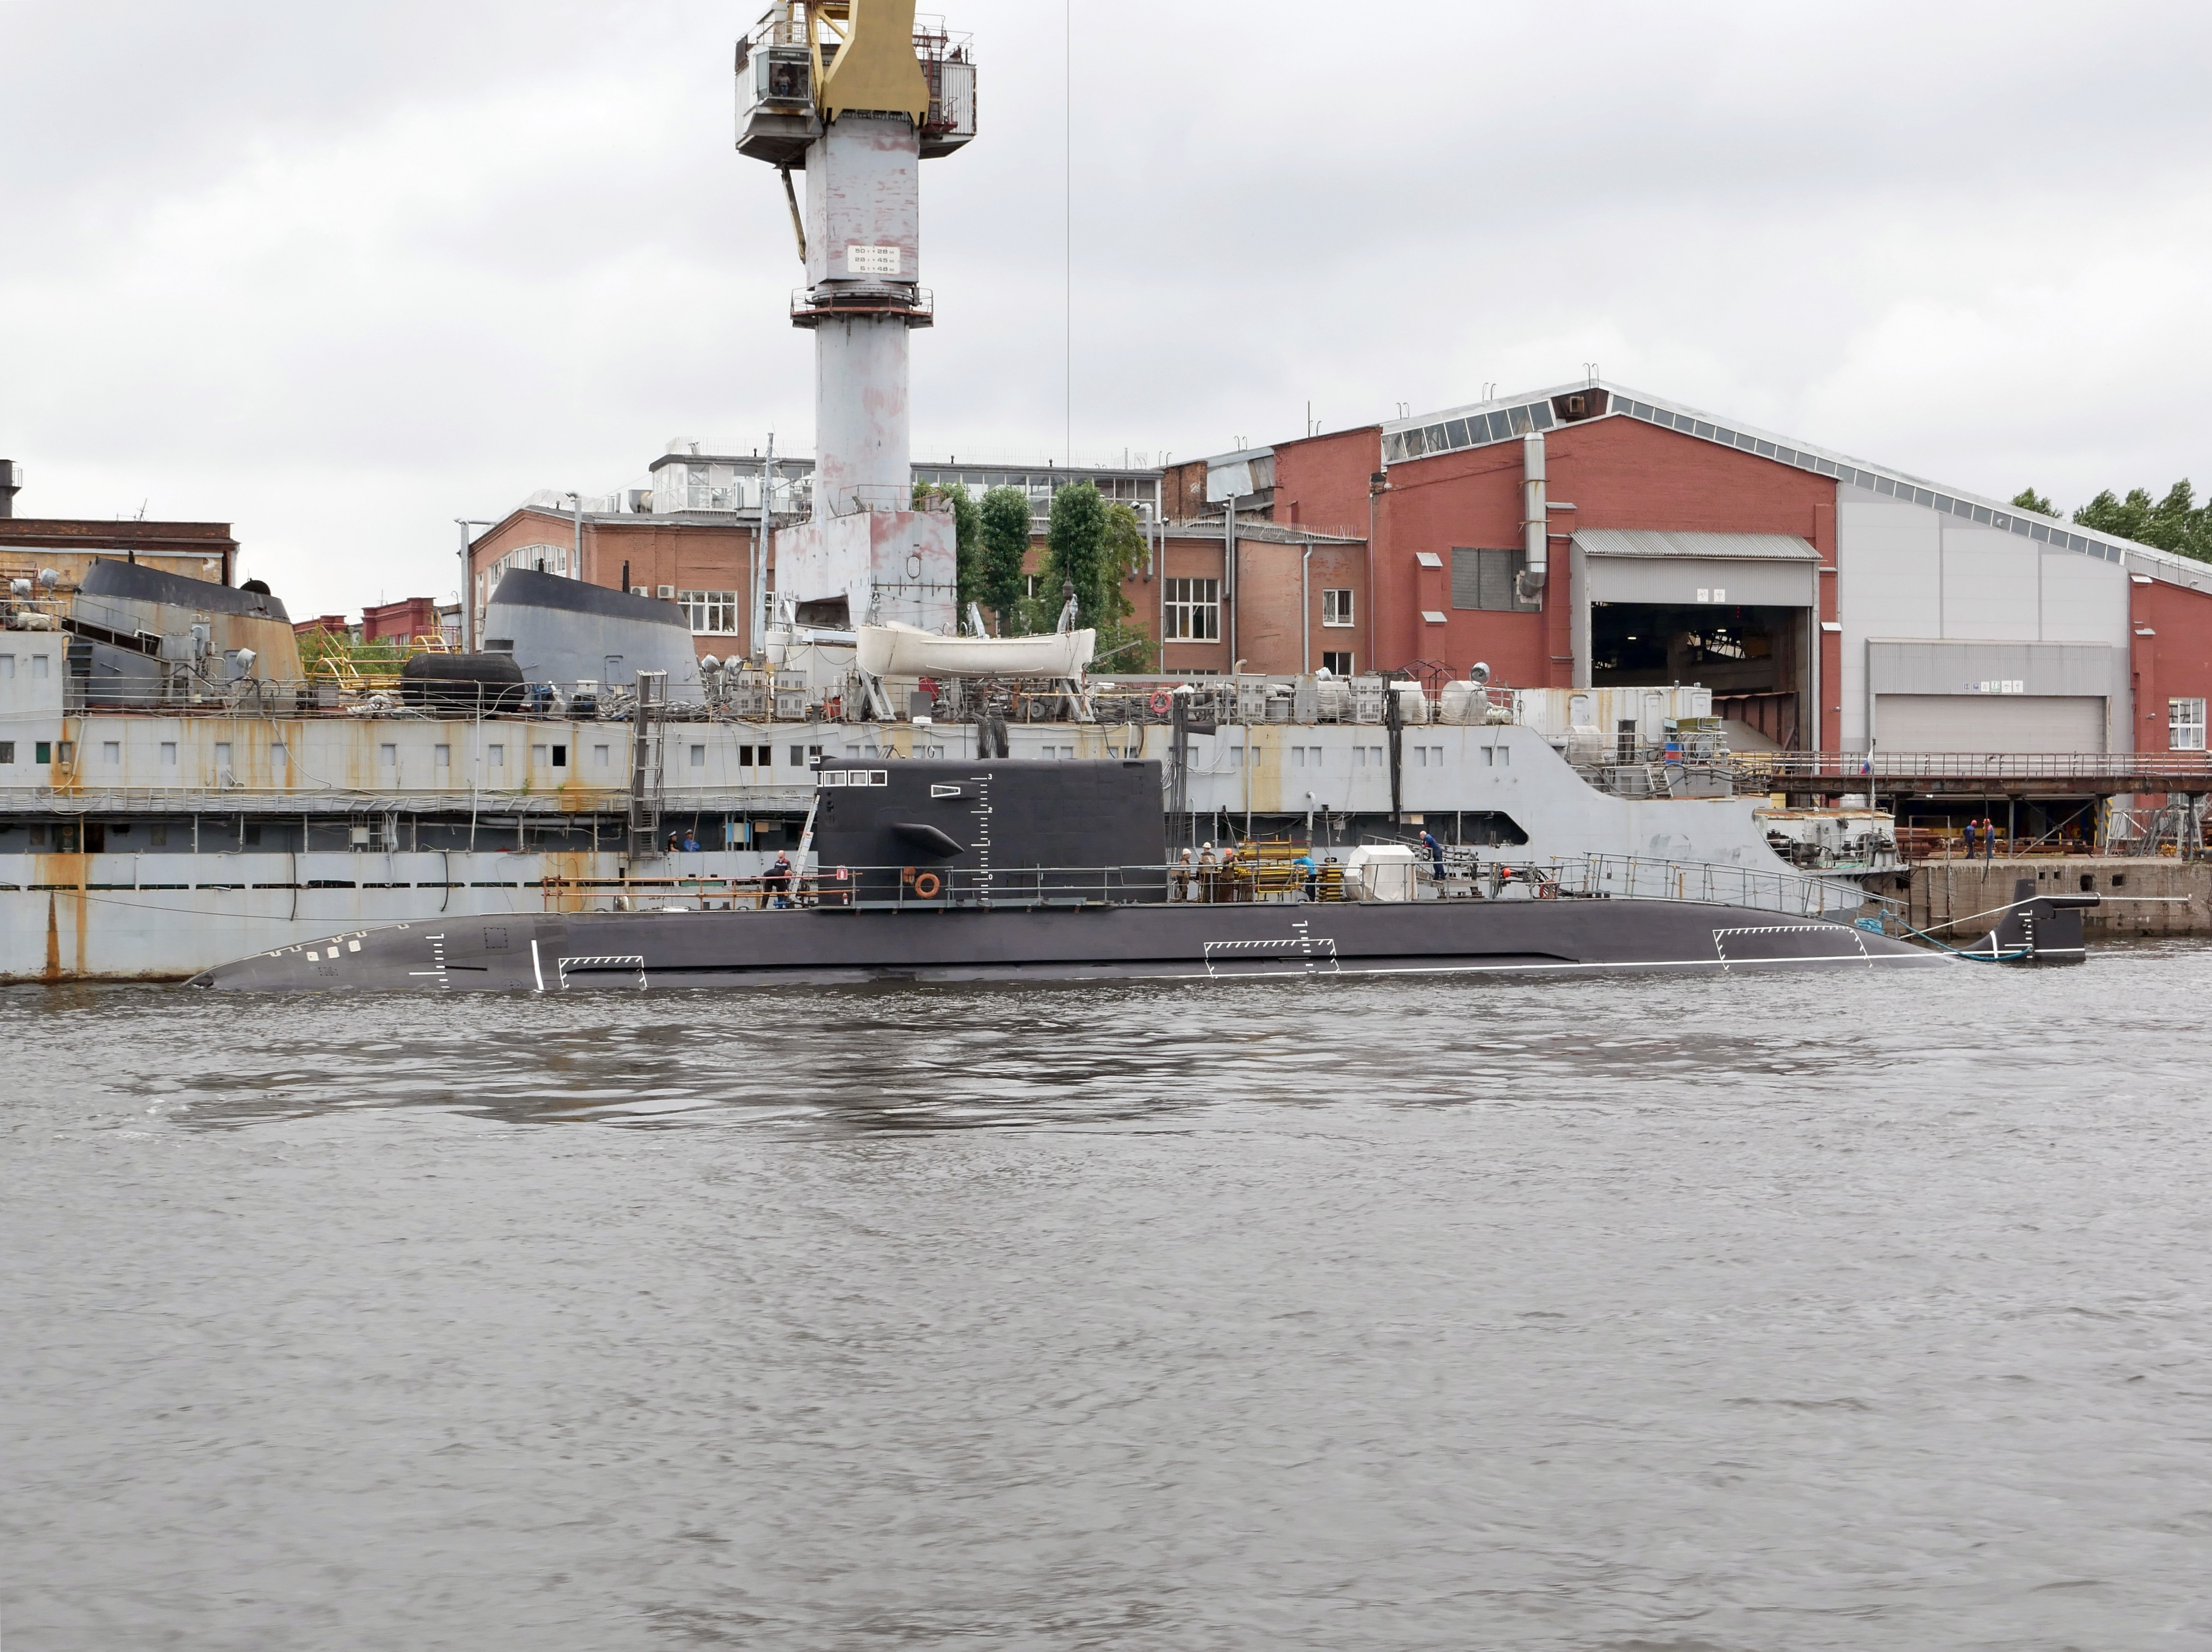 Project 677: Lada/Amur(export) class Submarine - Page 18 18-7700097-2019-07-18-13-02-03-p1870472